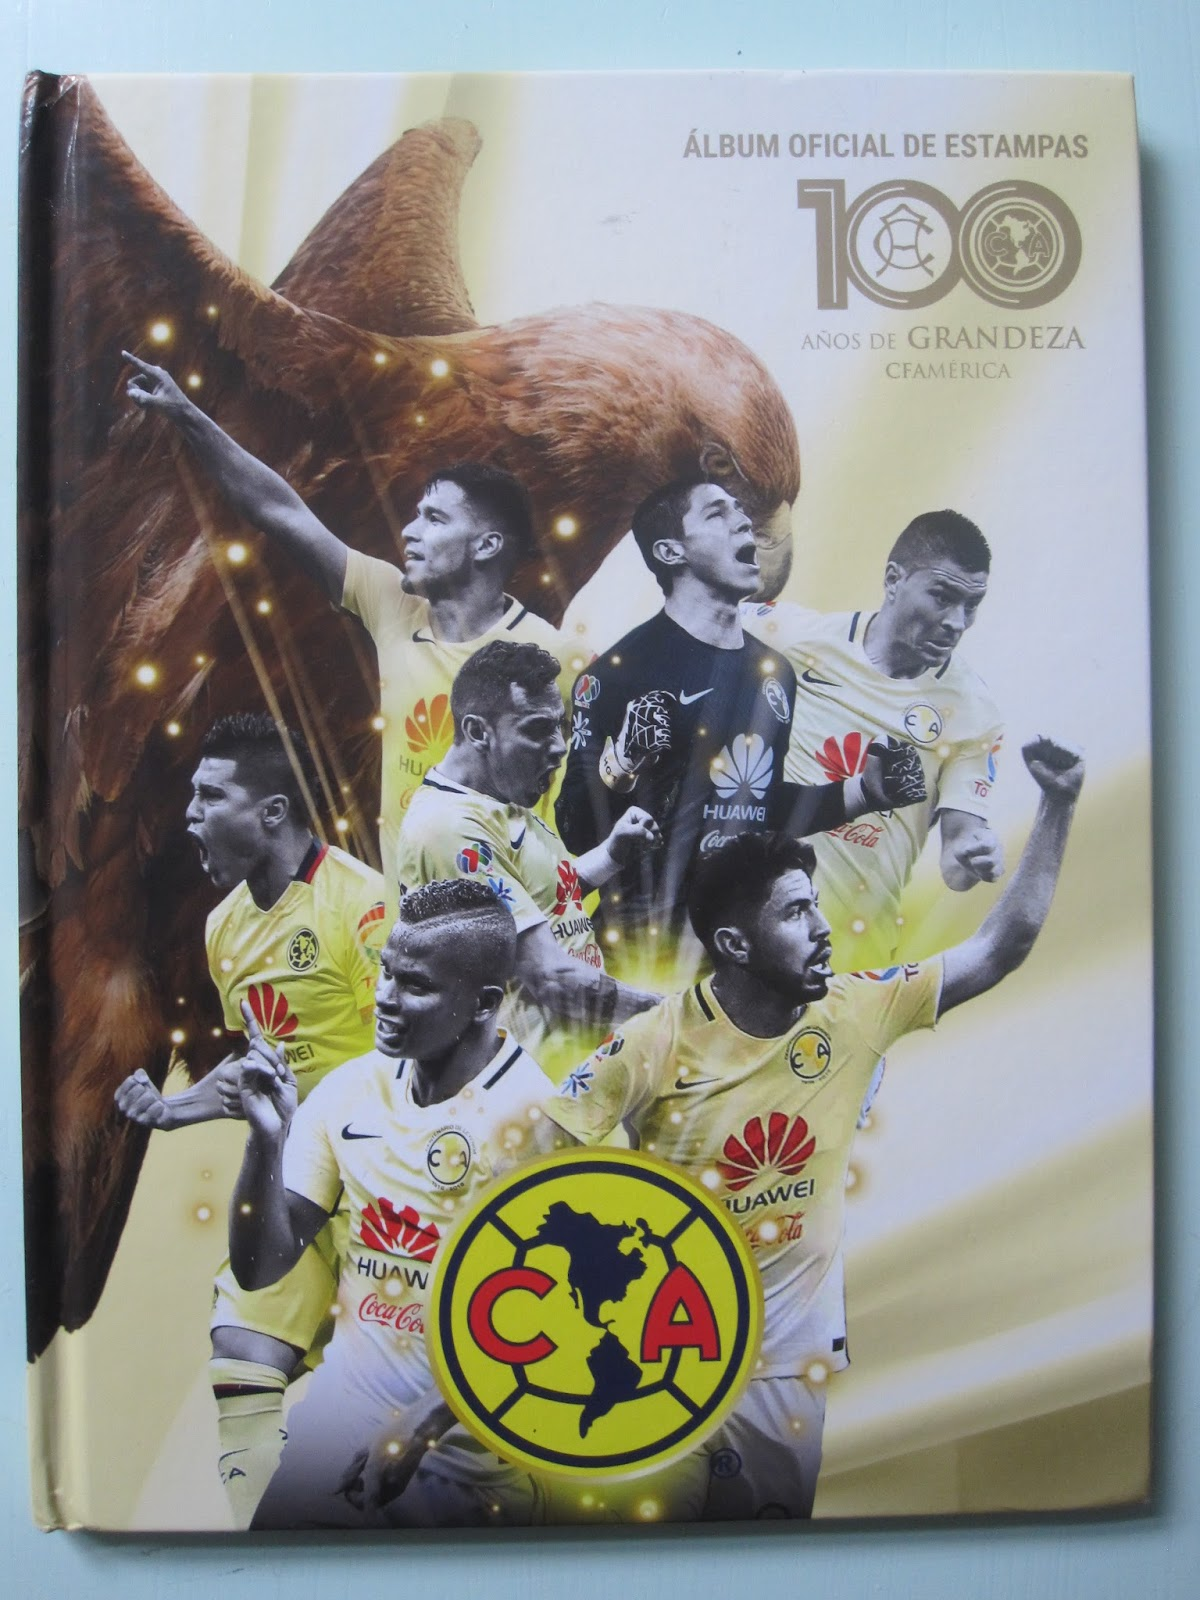 716edddc8 Only Good Stickers  Club America (Mexico) - 100 años de grandeza